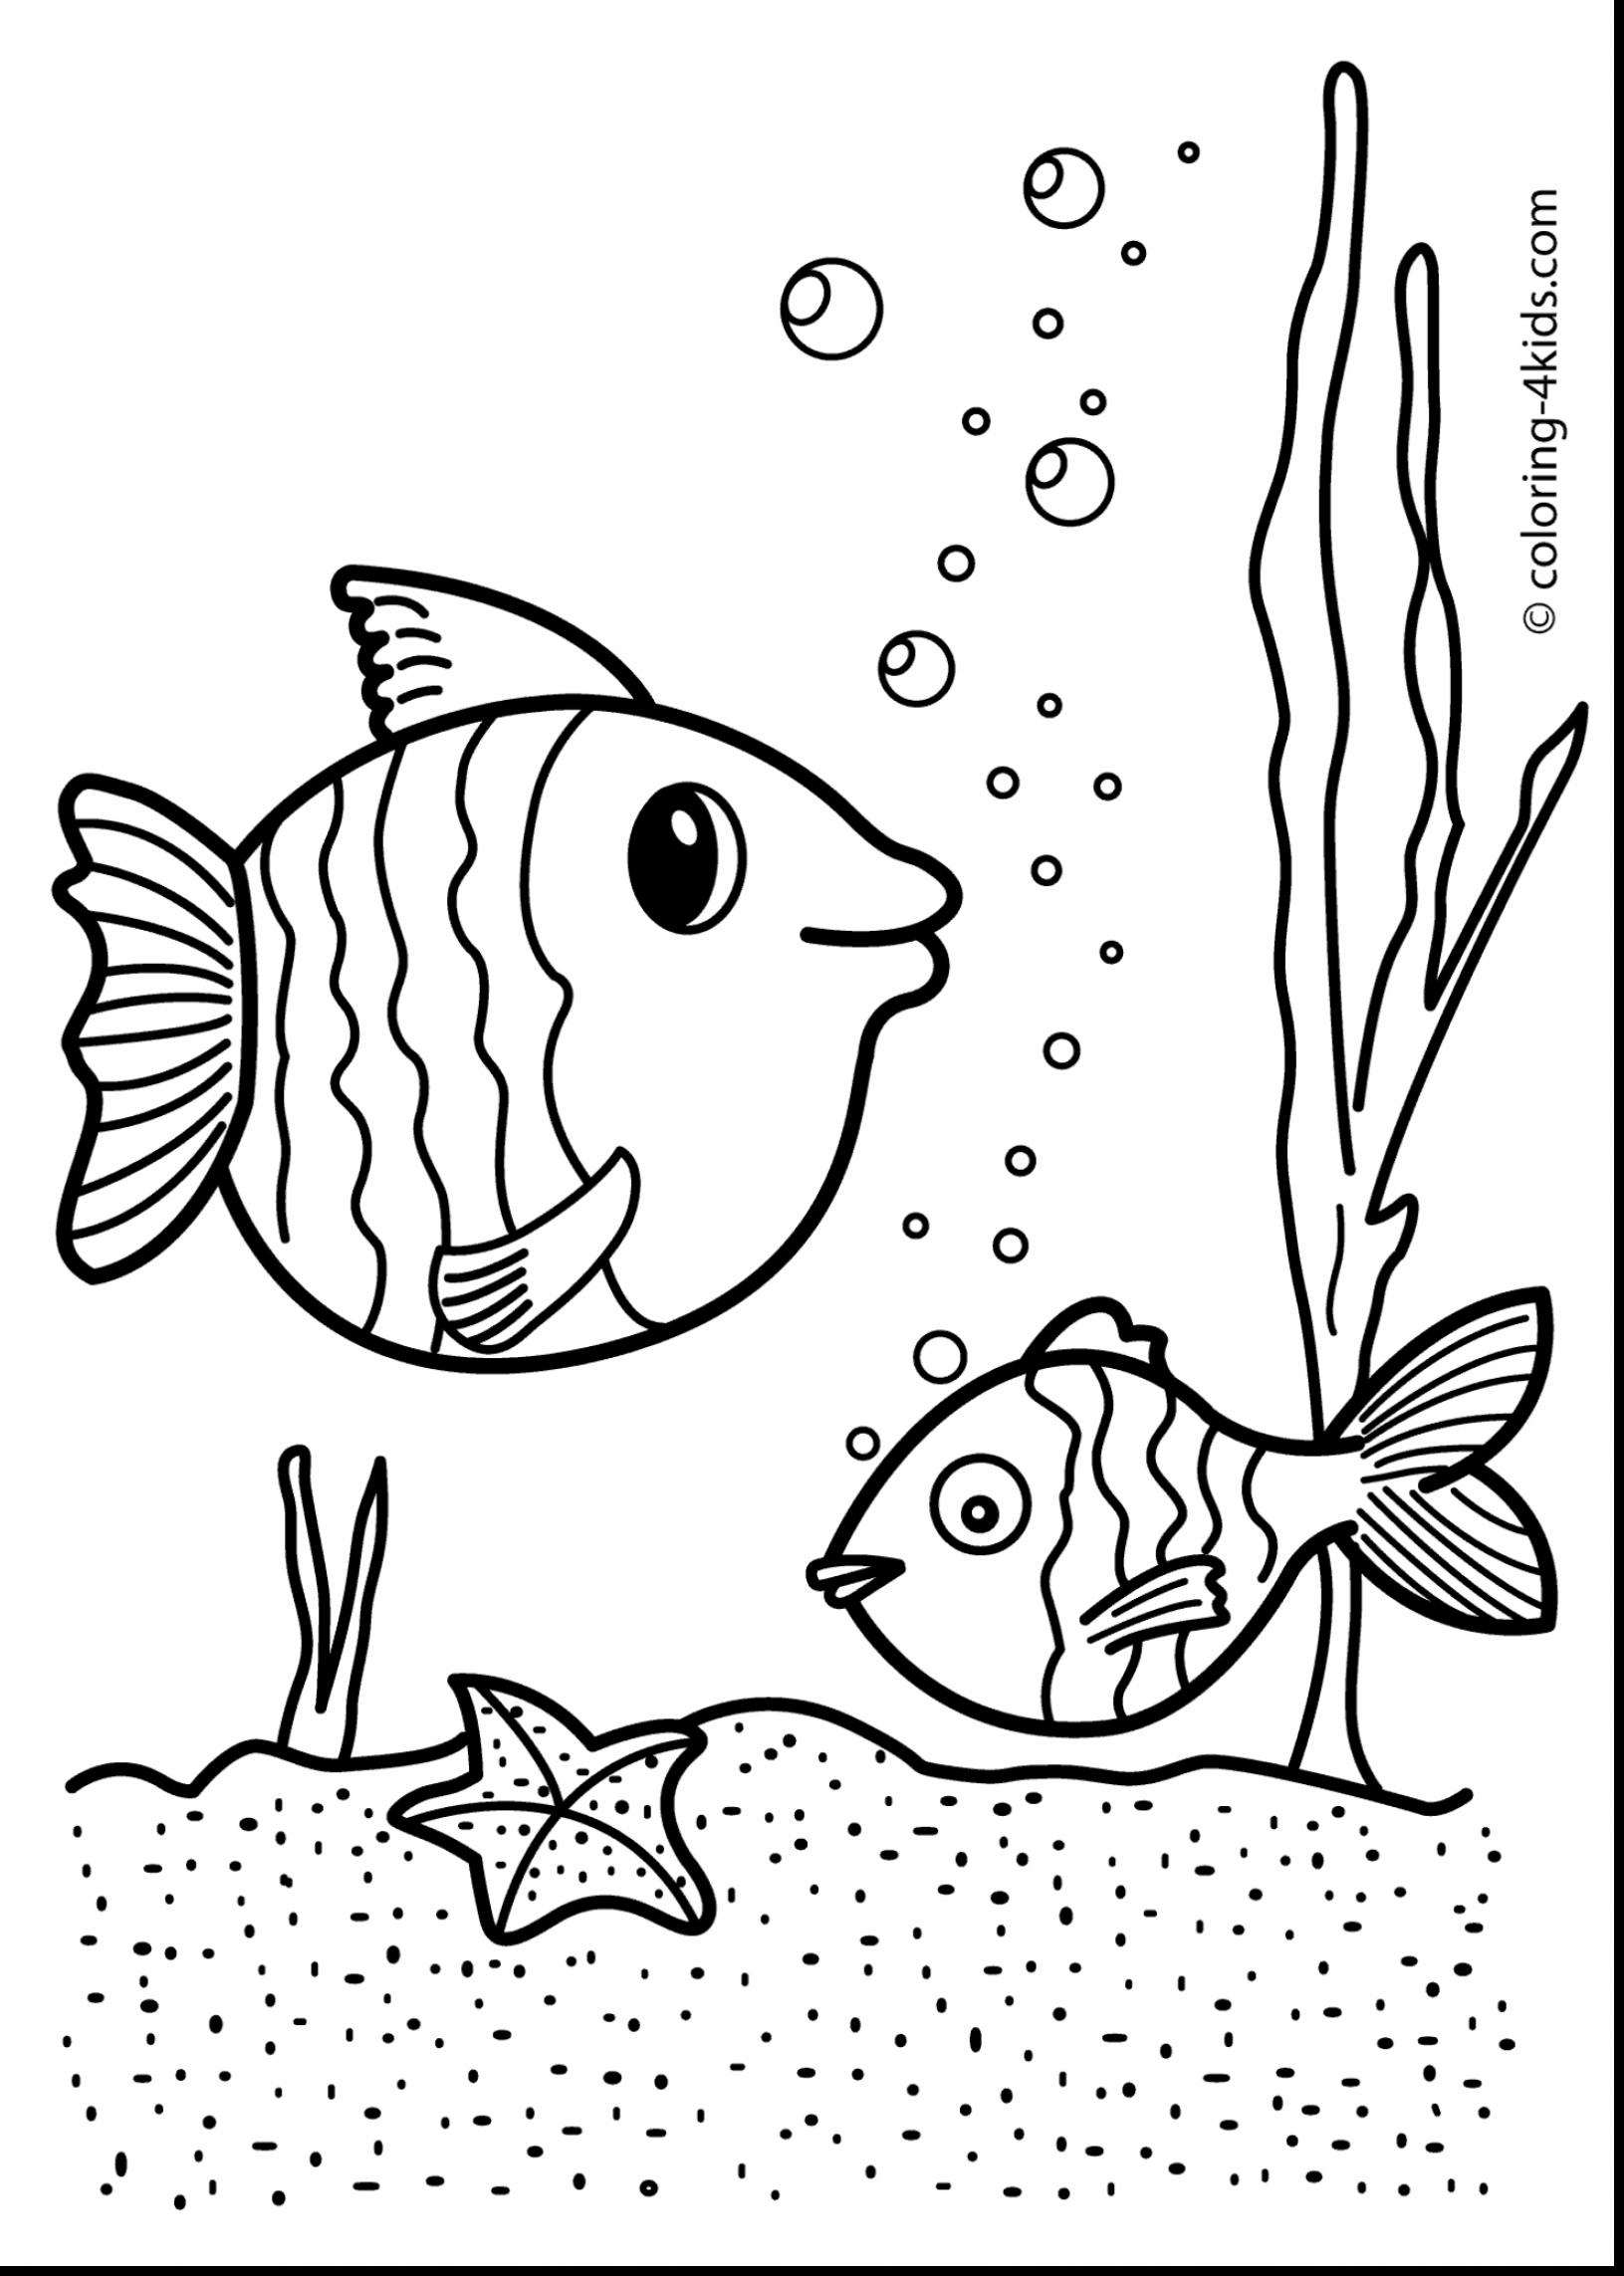 colouring pages of nature nature coloring pages to download and print for free pages of colouring nature